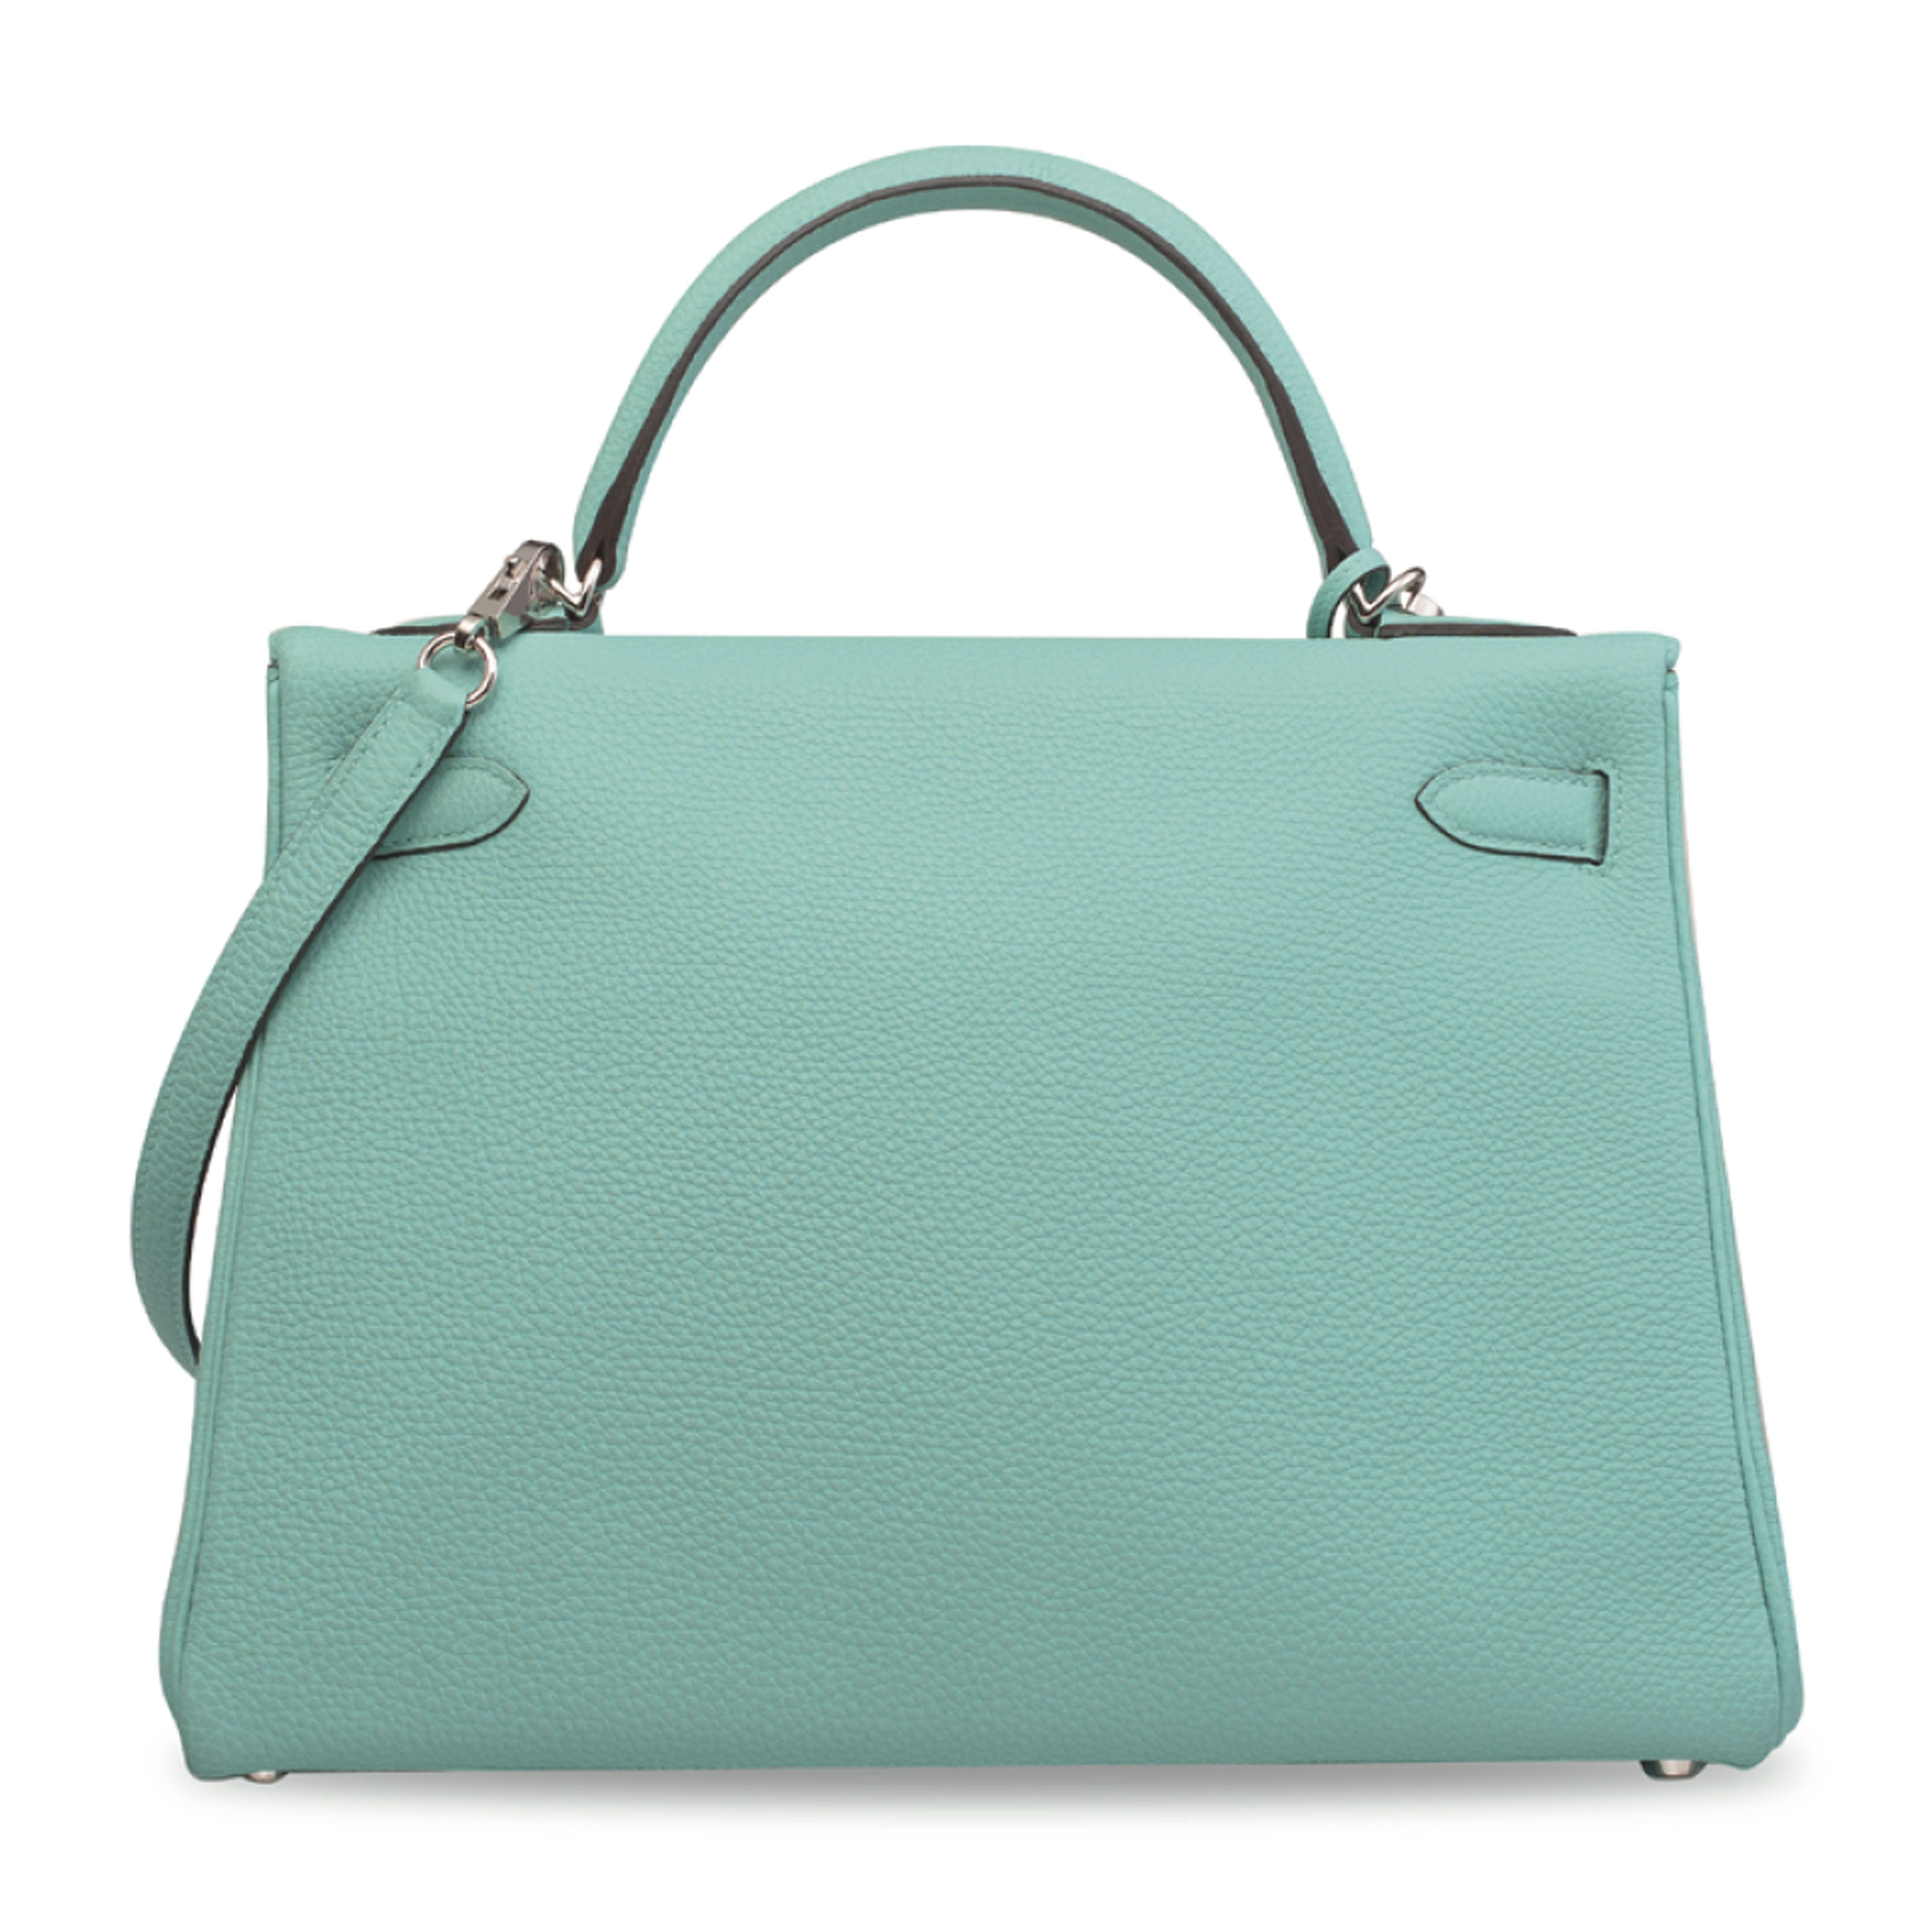 A BLEU ATOLL CLÉMENCE LEATHER